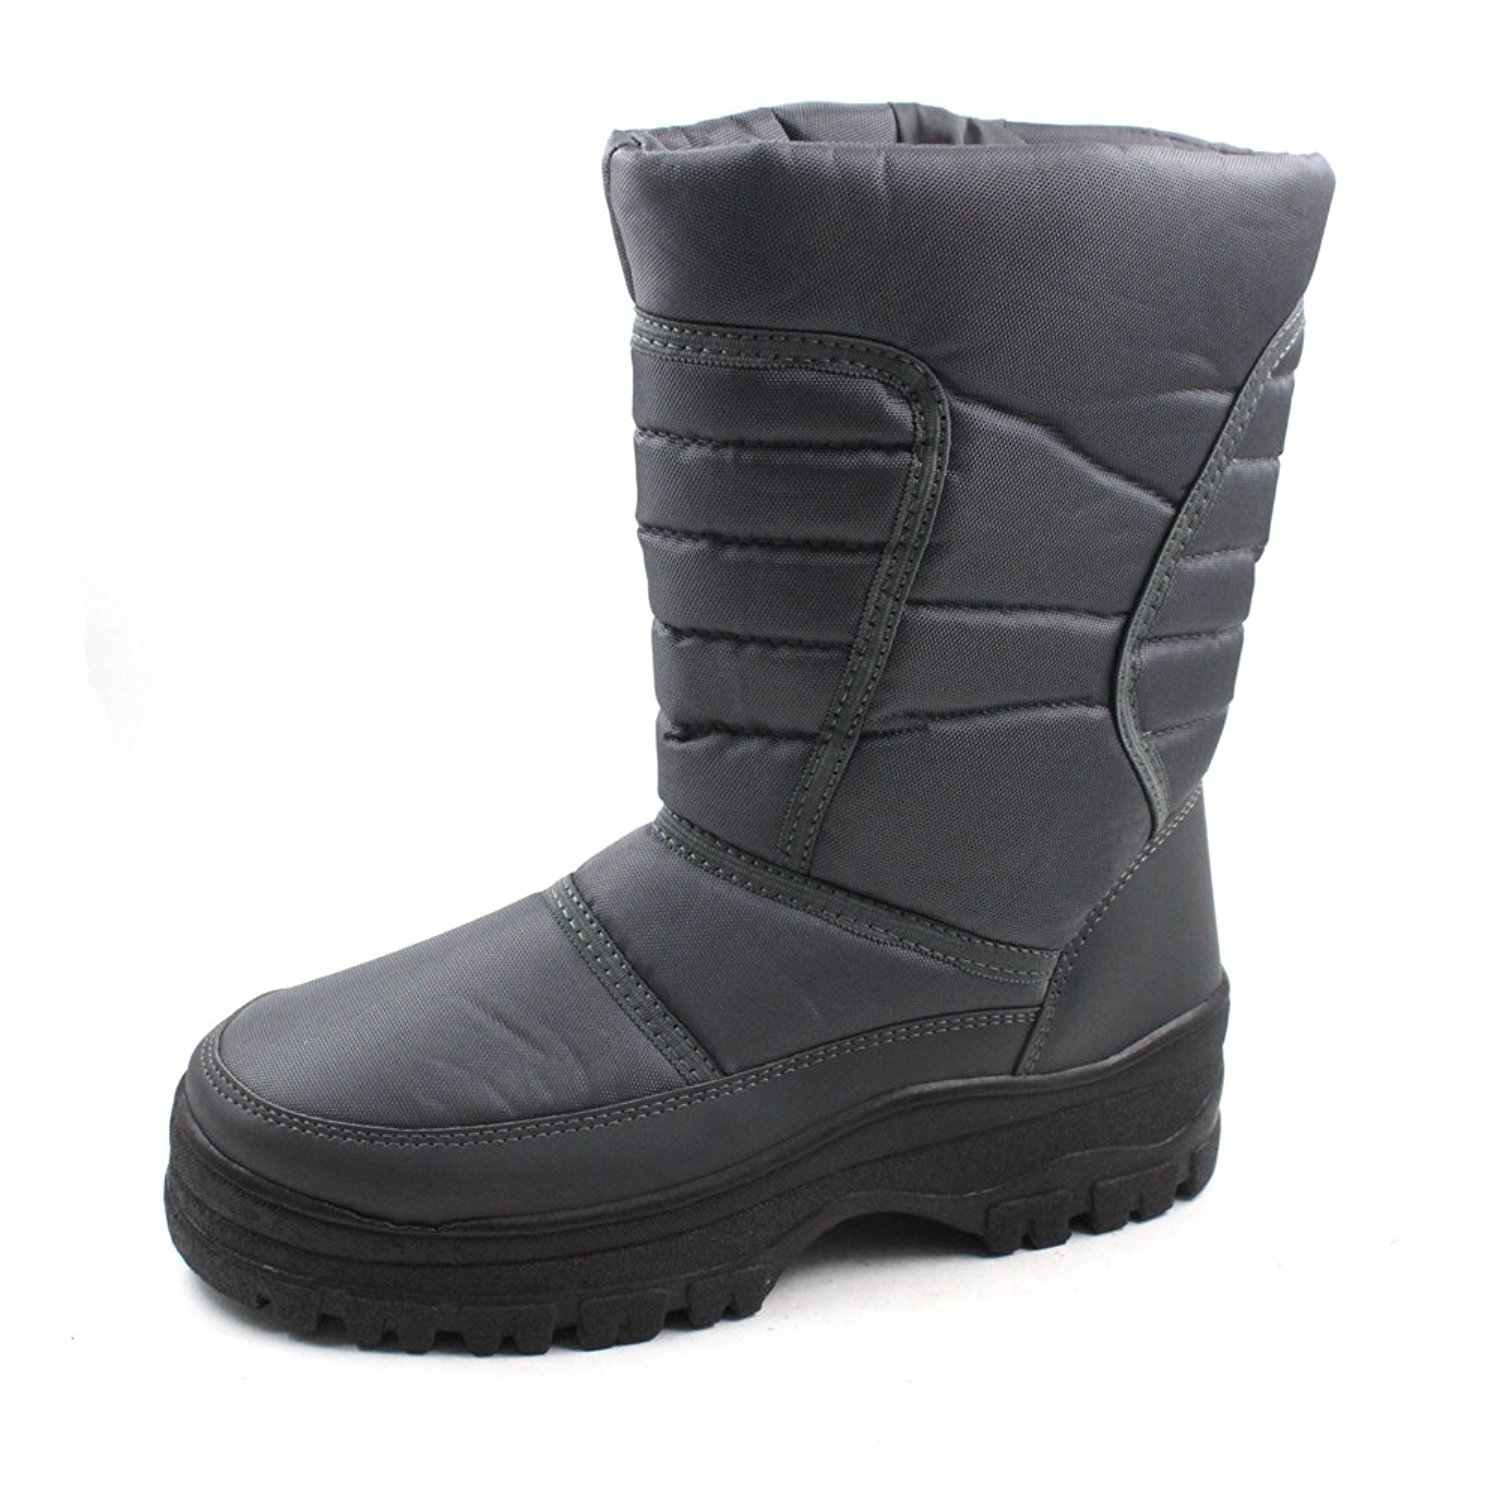 Skadoo Mens Snow Winter Cold Weather Boots | eBay